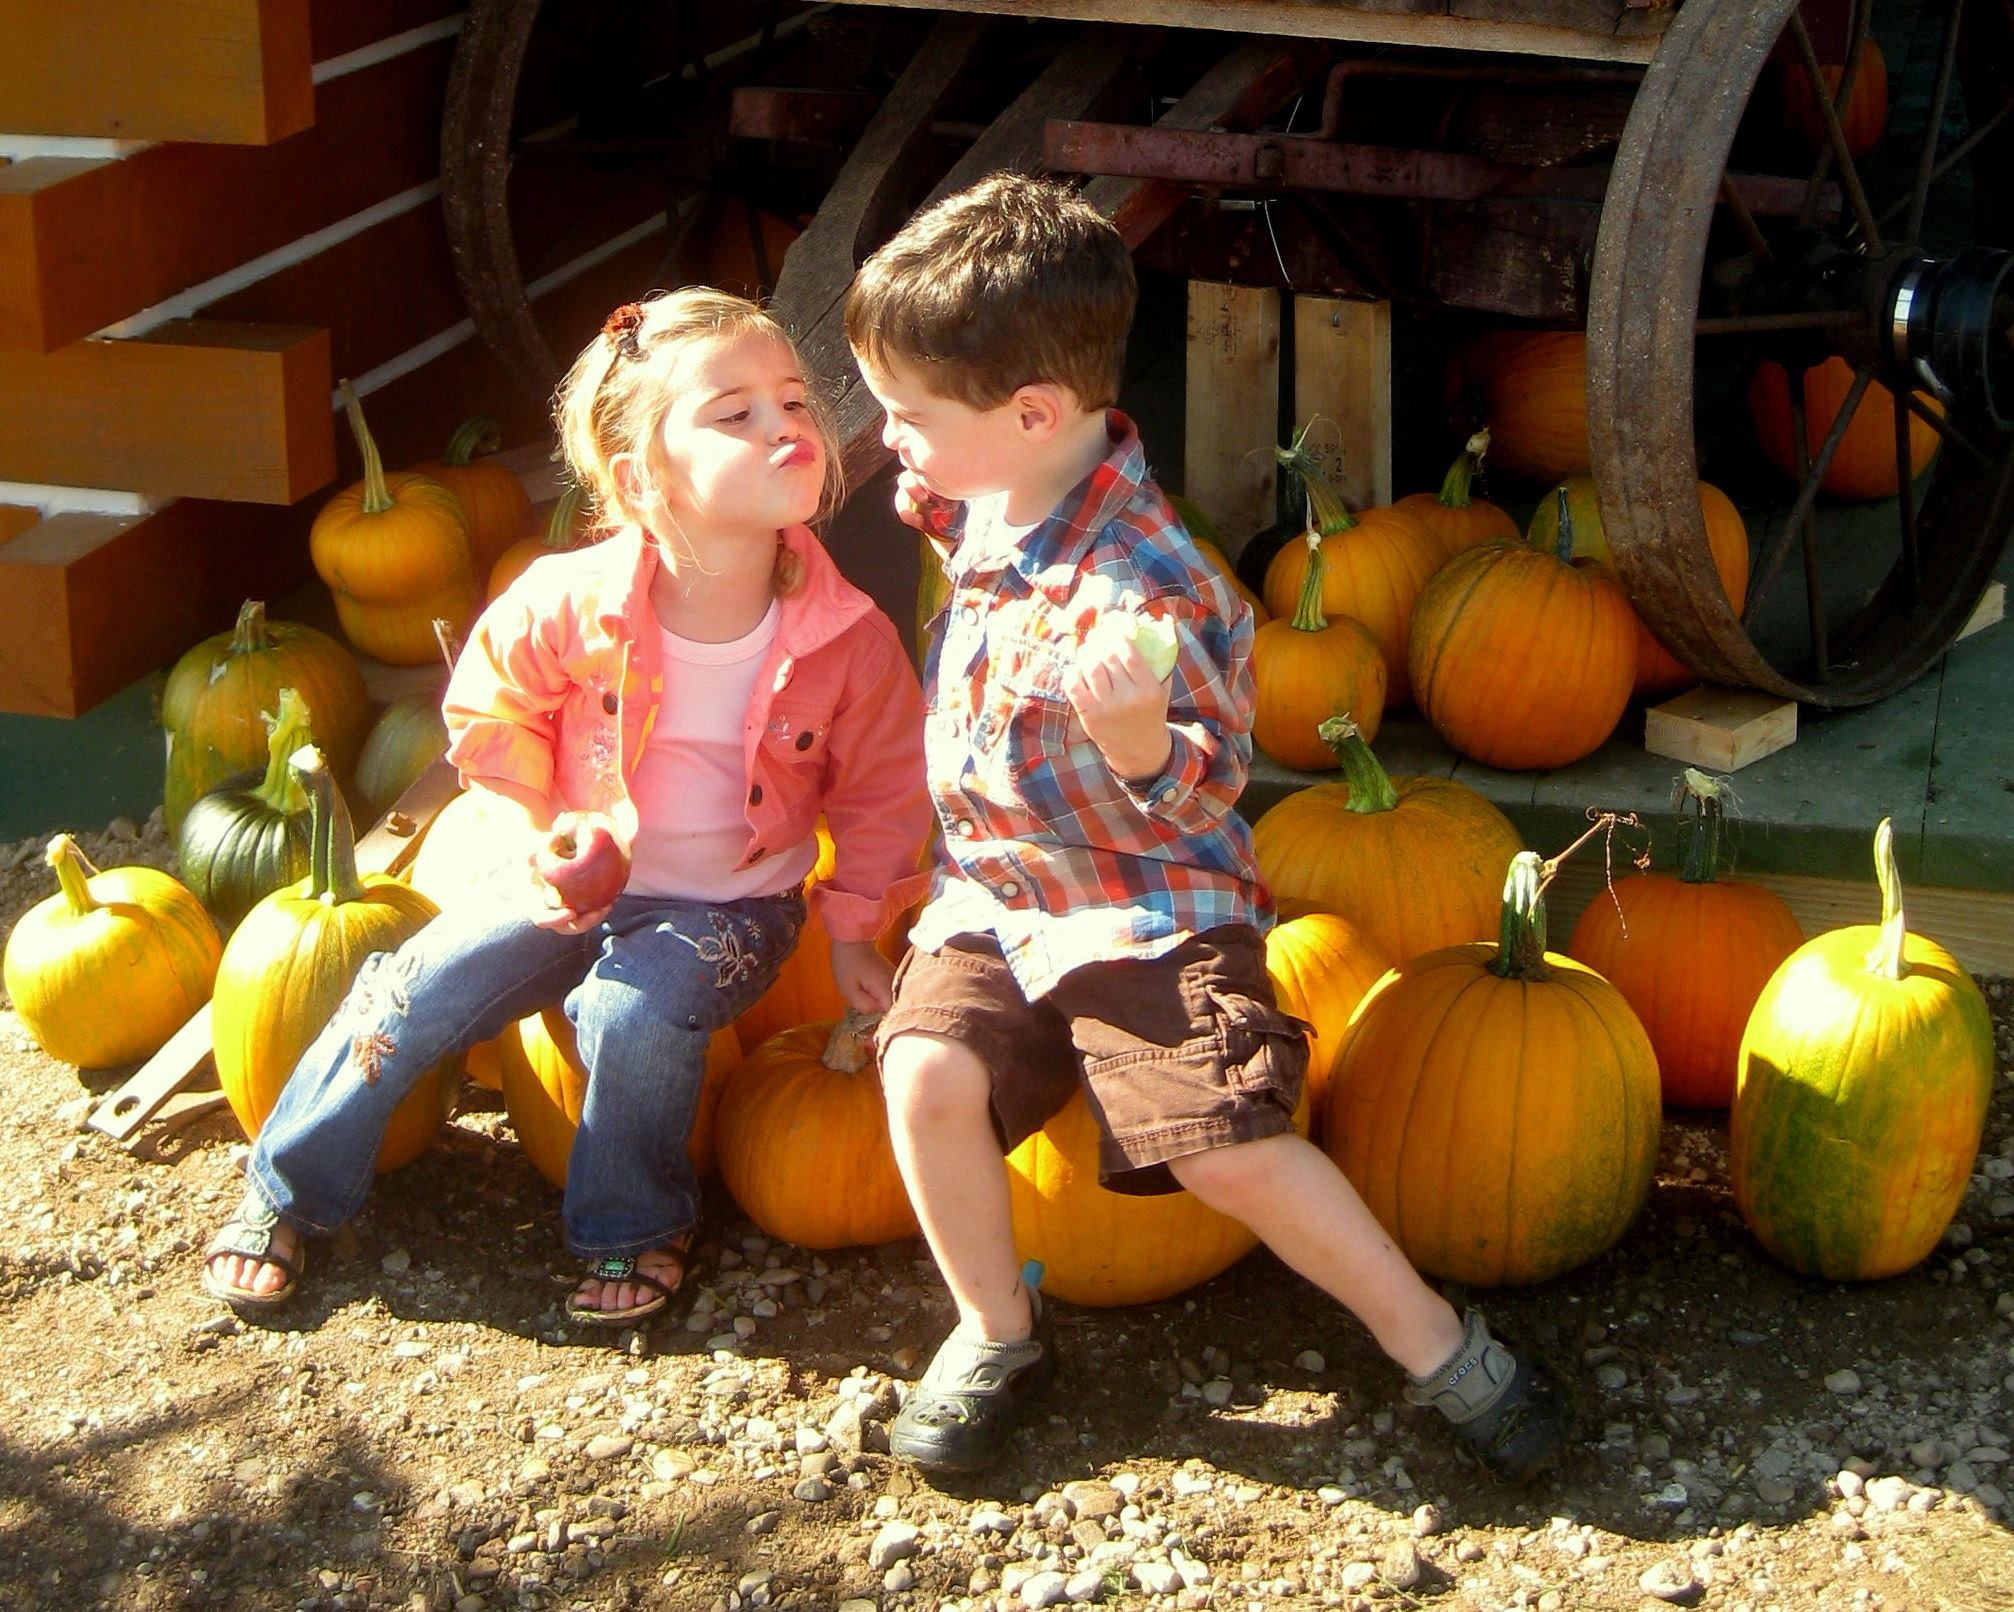 Young girl and boy sit on pumpkins